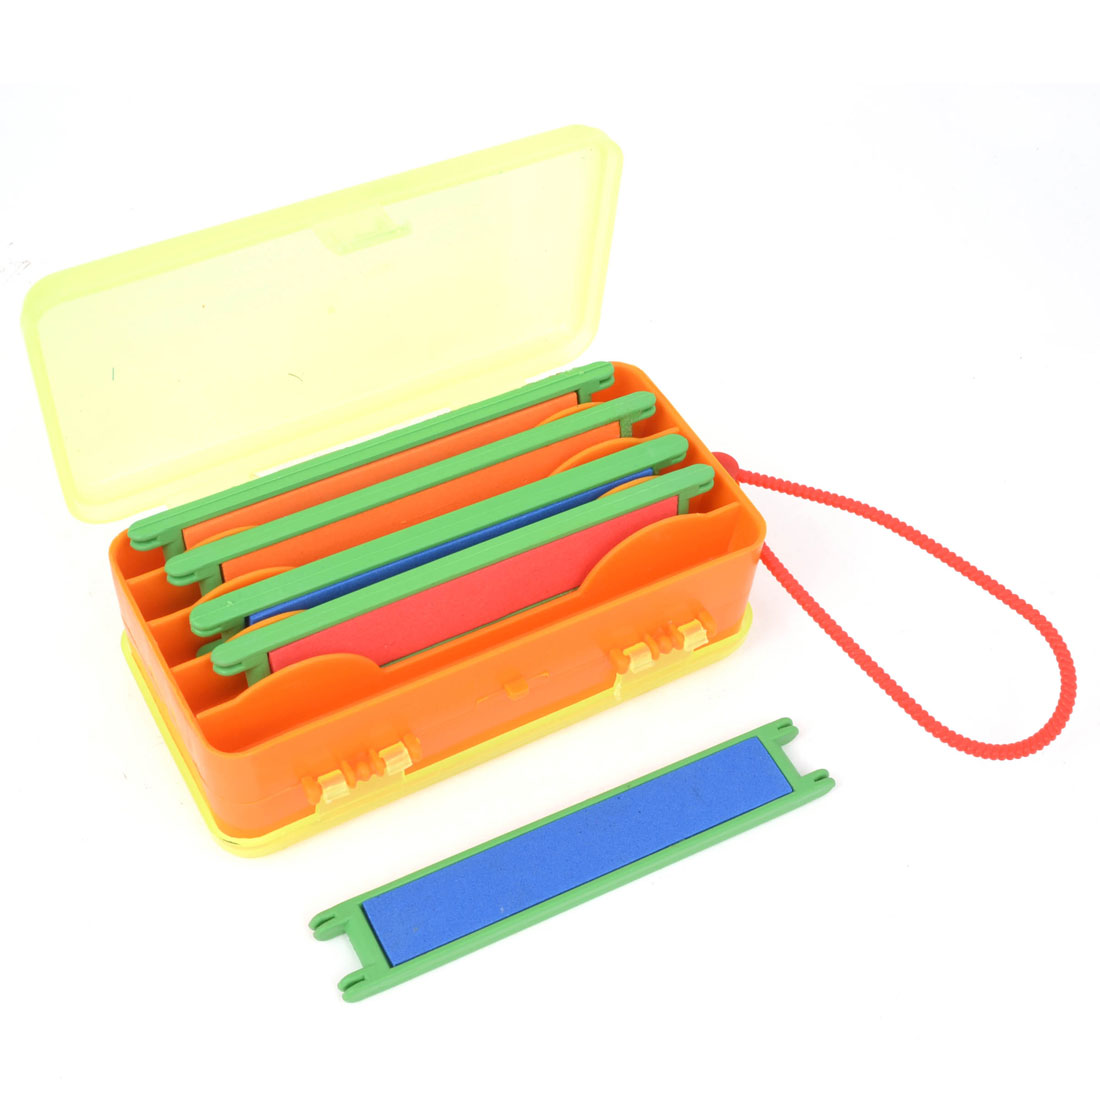 5 Line Spool Winder Tri Colors Line Spools Plastic Double Sides Green Orange Fishing Tackle Box Case